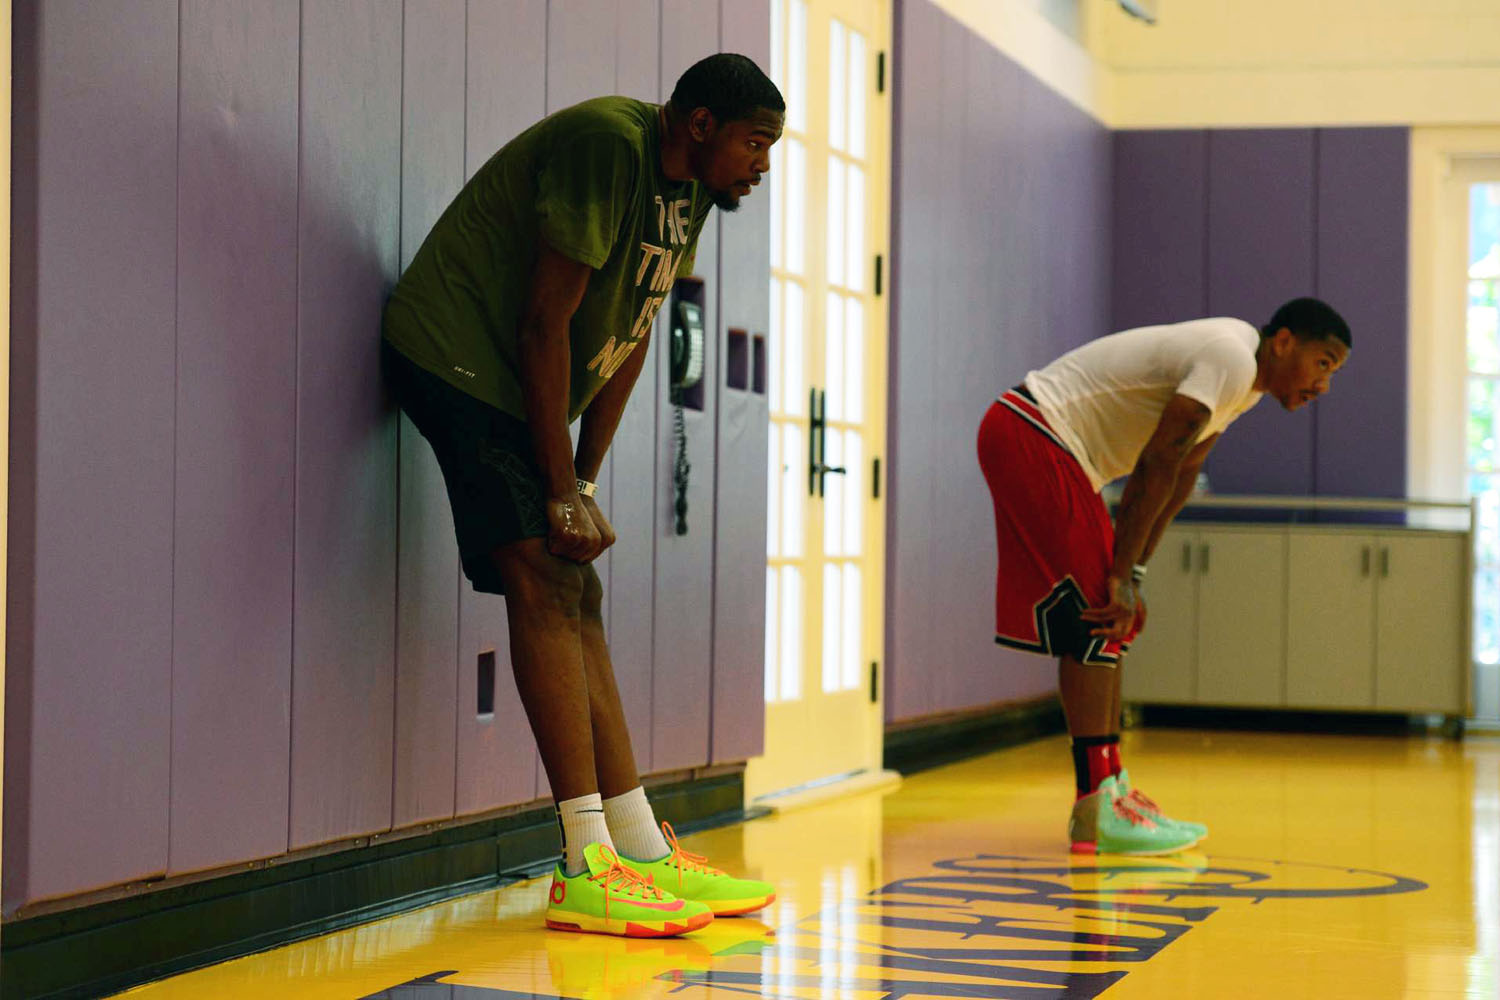 Kevin Durant and Derrick Rose take a breather during a training session with NBA trainer Rob McClanaghan.